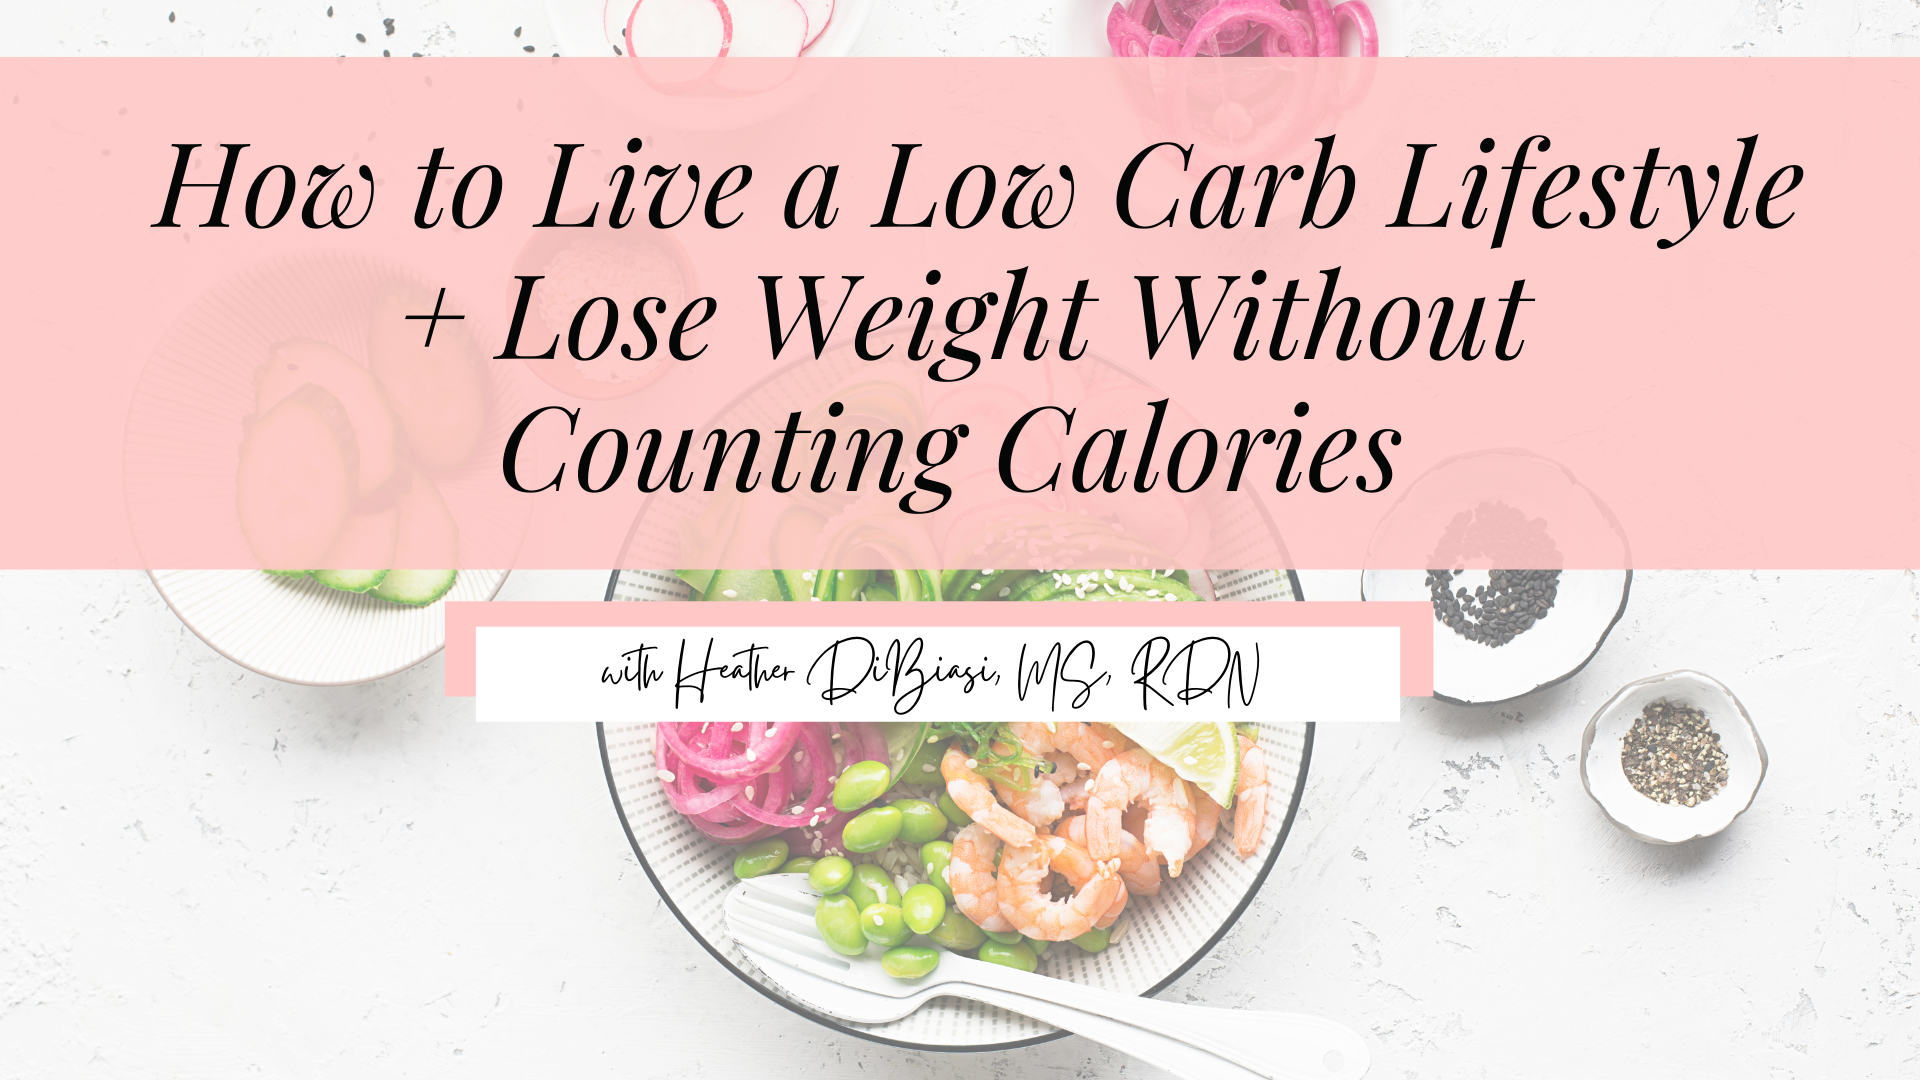 free workshop image: How to live a low carb lifestyle and lose weight without counting calories